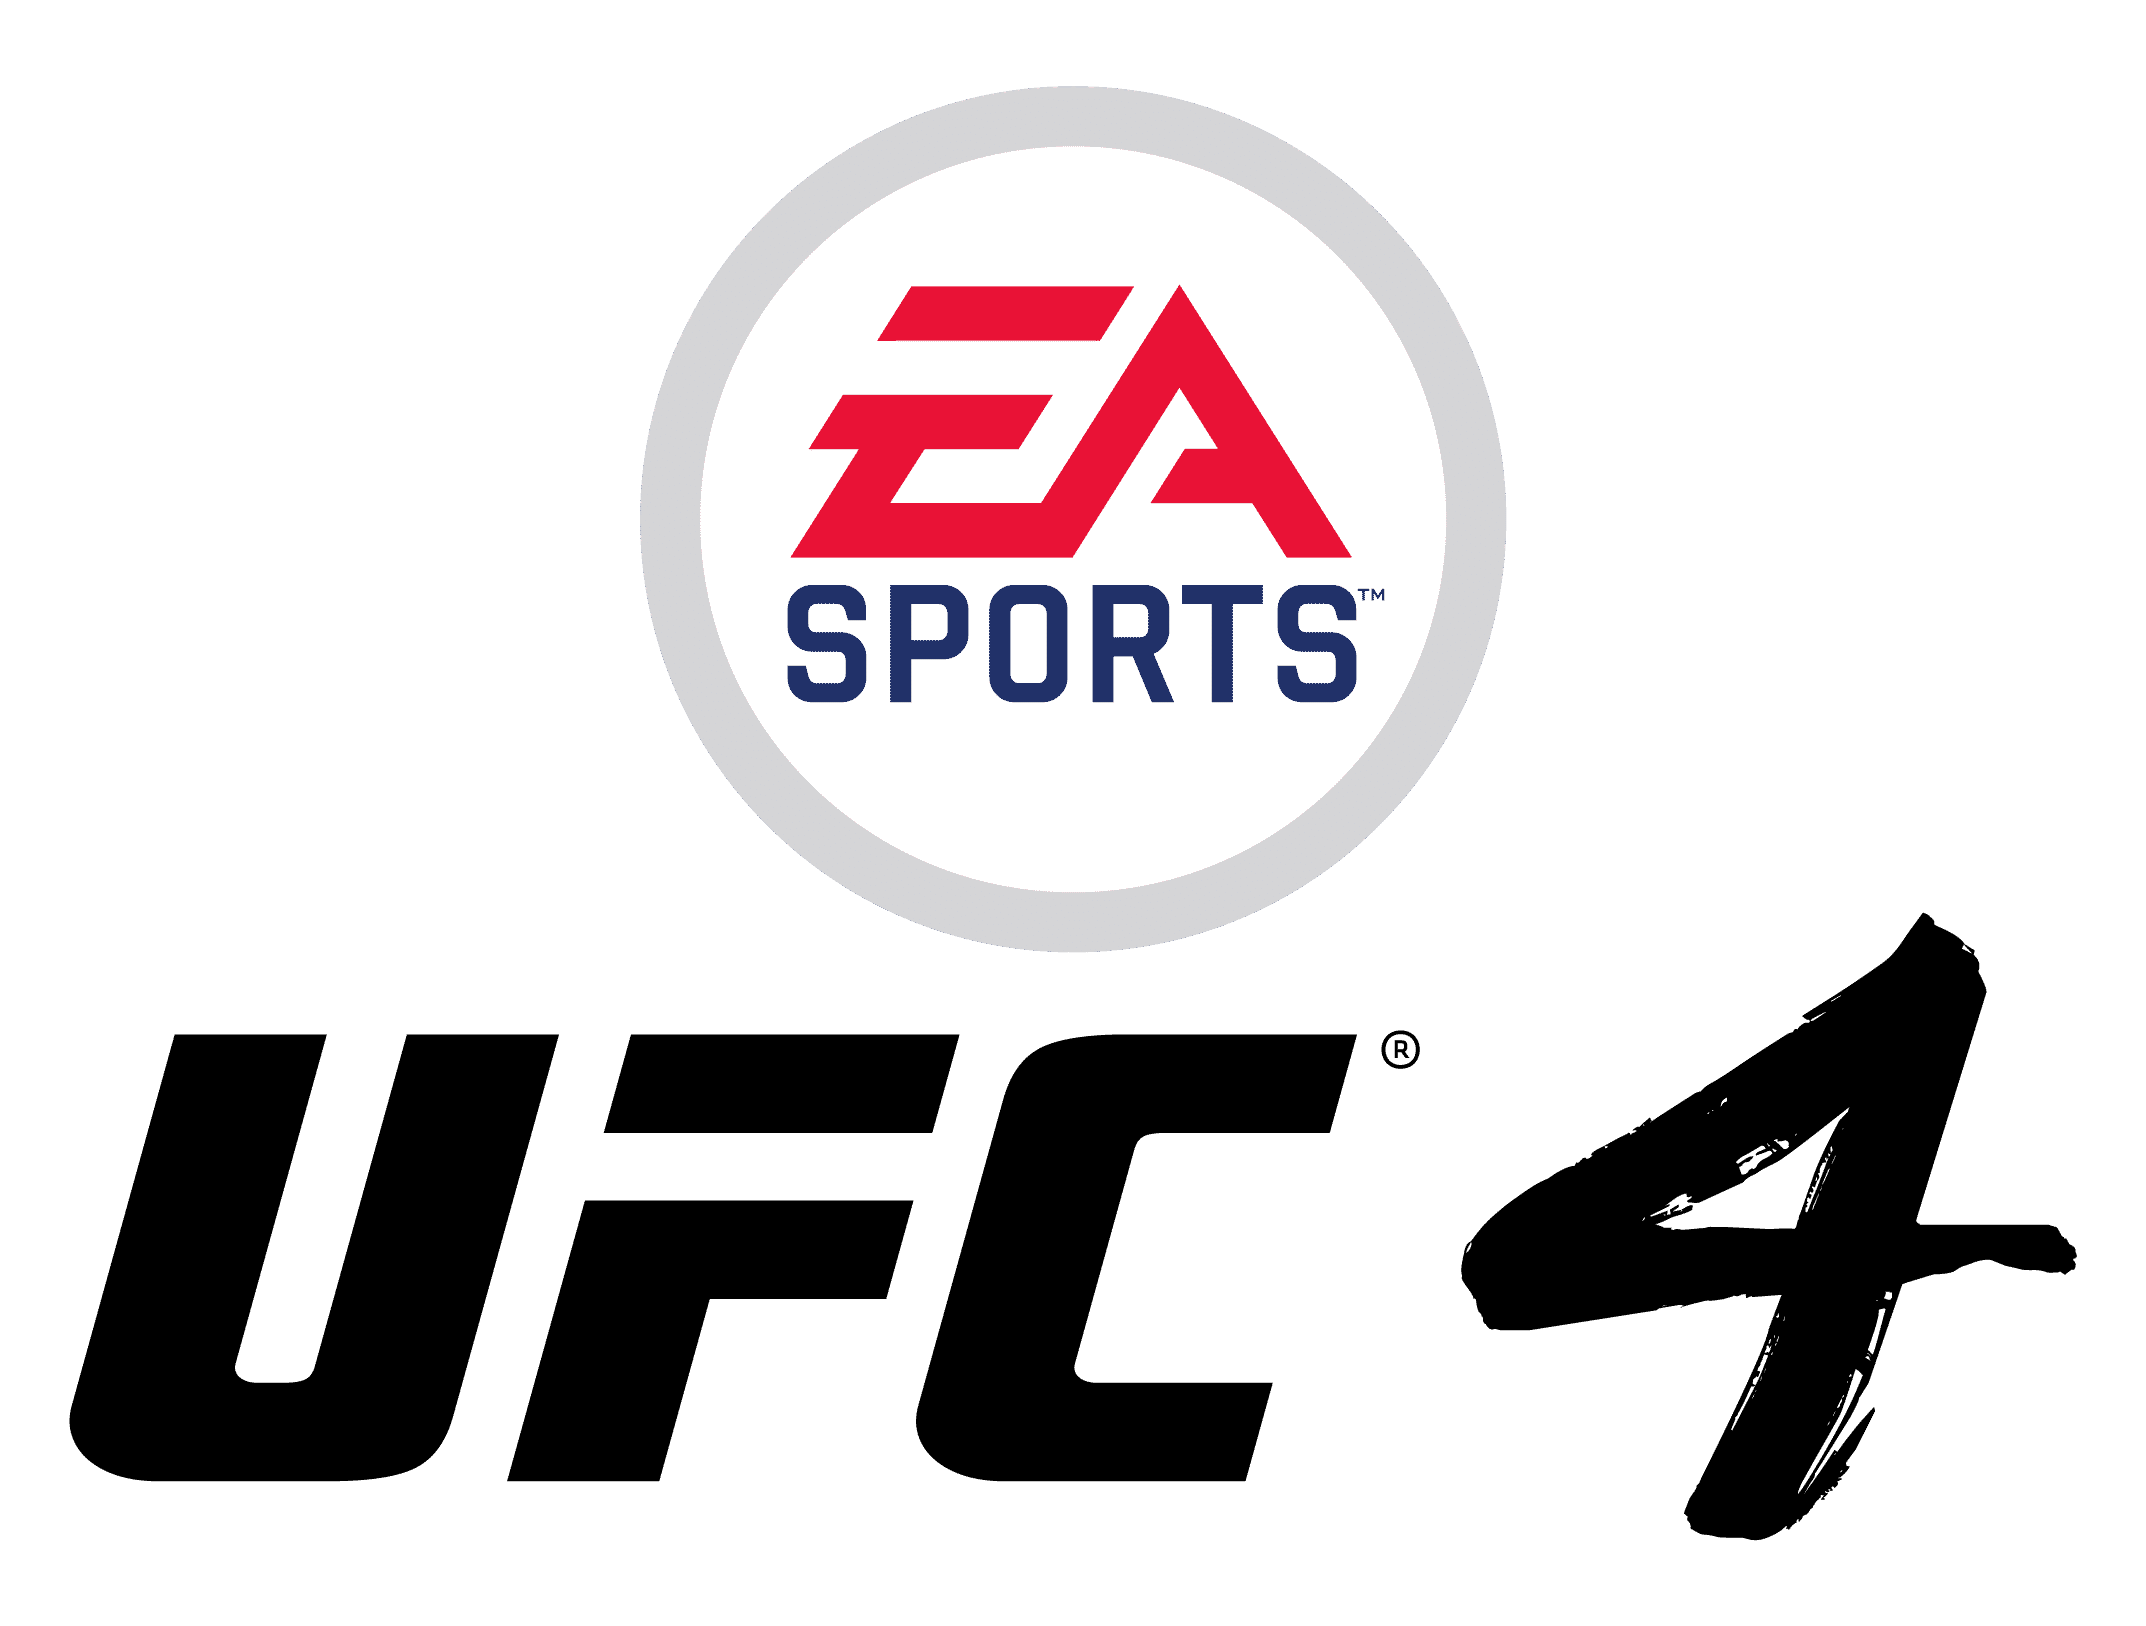 EA SPORTS™ UFC 4 Launches August 14 - Pre-Order Today for Access to Heavyweight Boxing Champions Anthony Joshua and Tyson Fury and the All New Backyard and Kumite Customization Packs